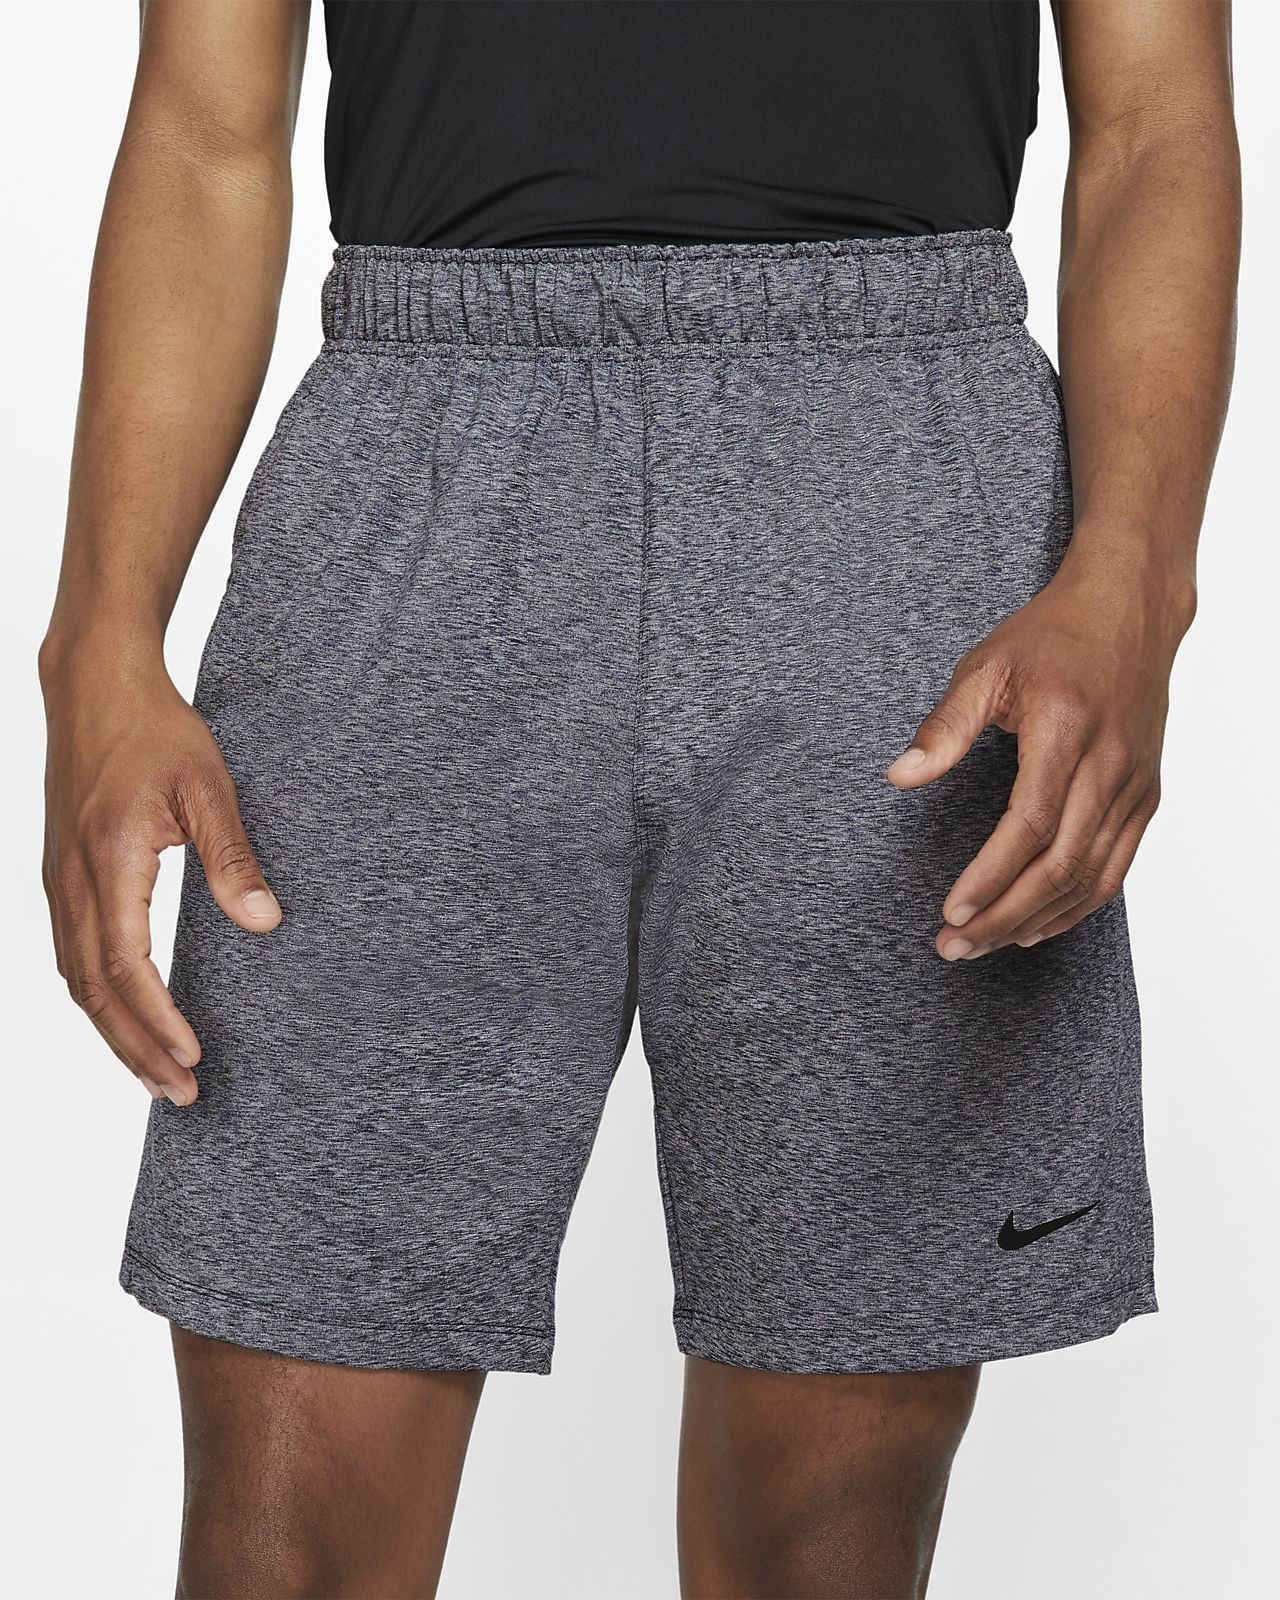 Nike Dri-FIT Men's Yoga Training Shorts